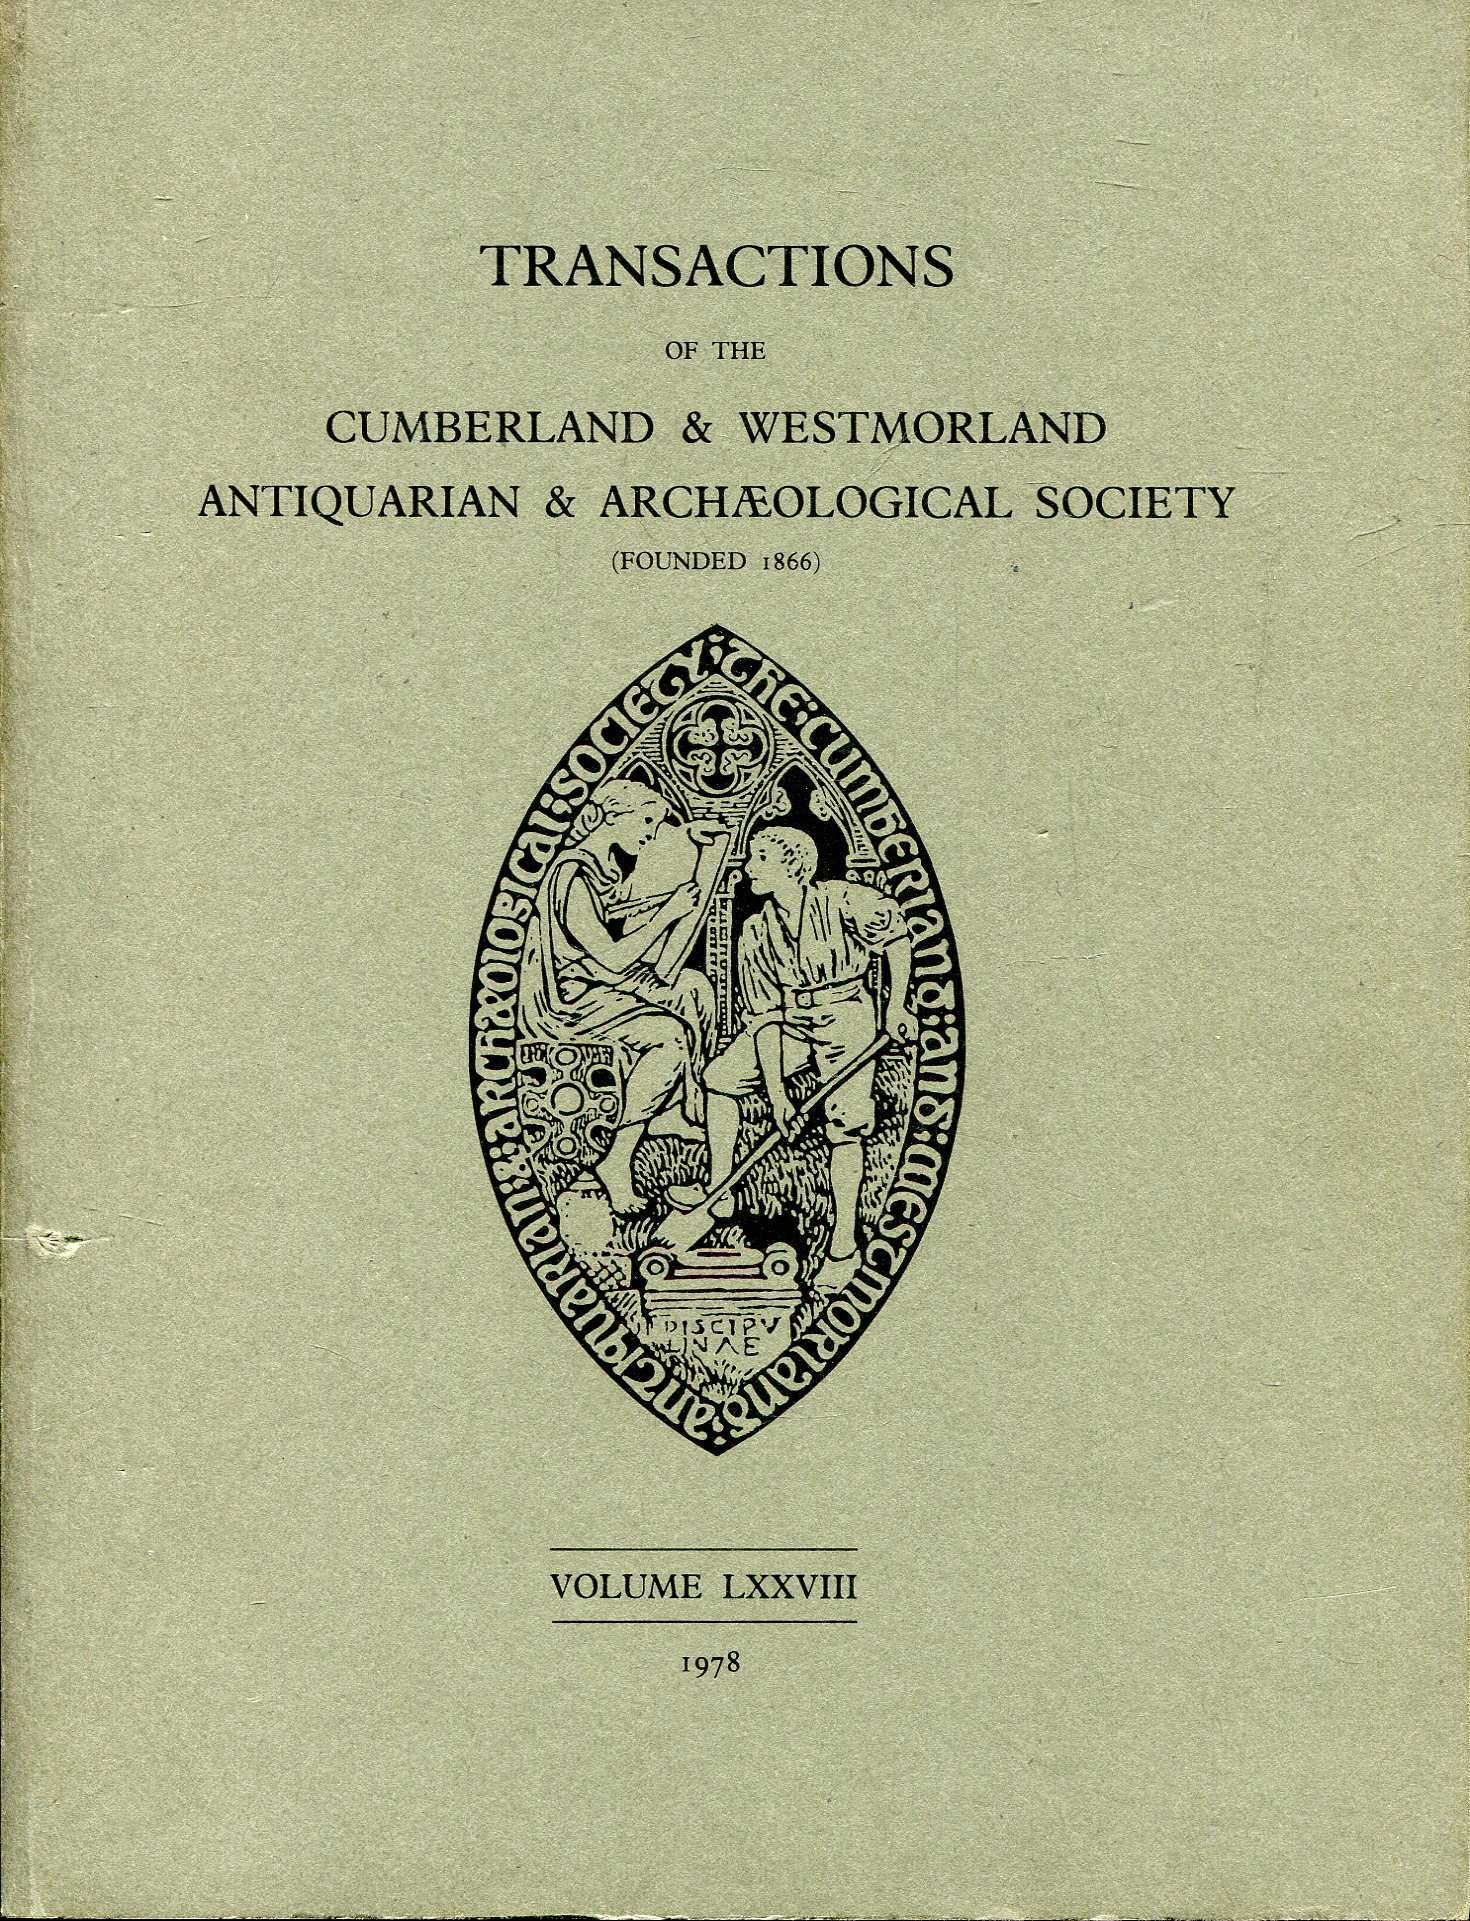 Image for Transactions of the Cumberland & Westmorland Antiquarian & Archaeological Society volume LXXVIII (78)